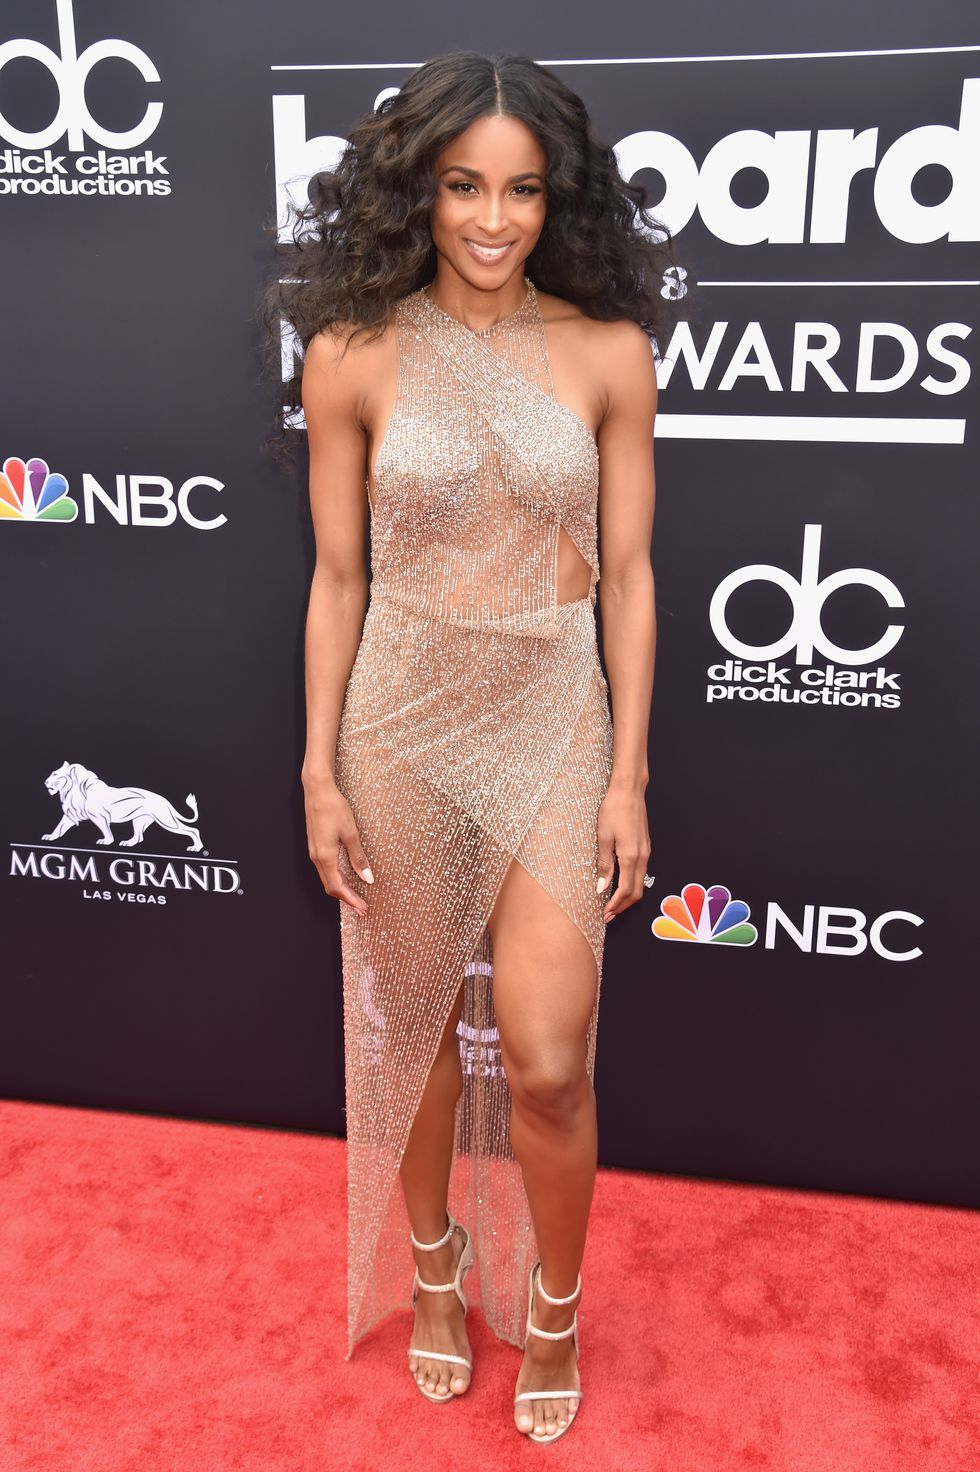 Celebrity Style, Fashion News, Fashion Trends, and Beauty ...